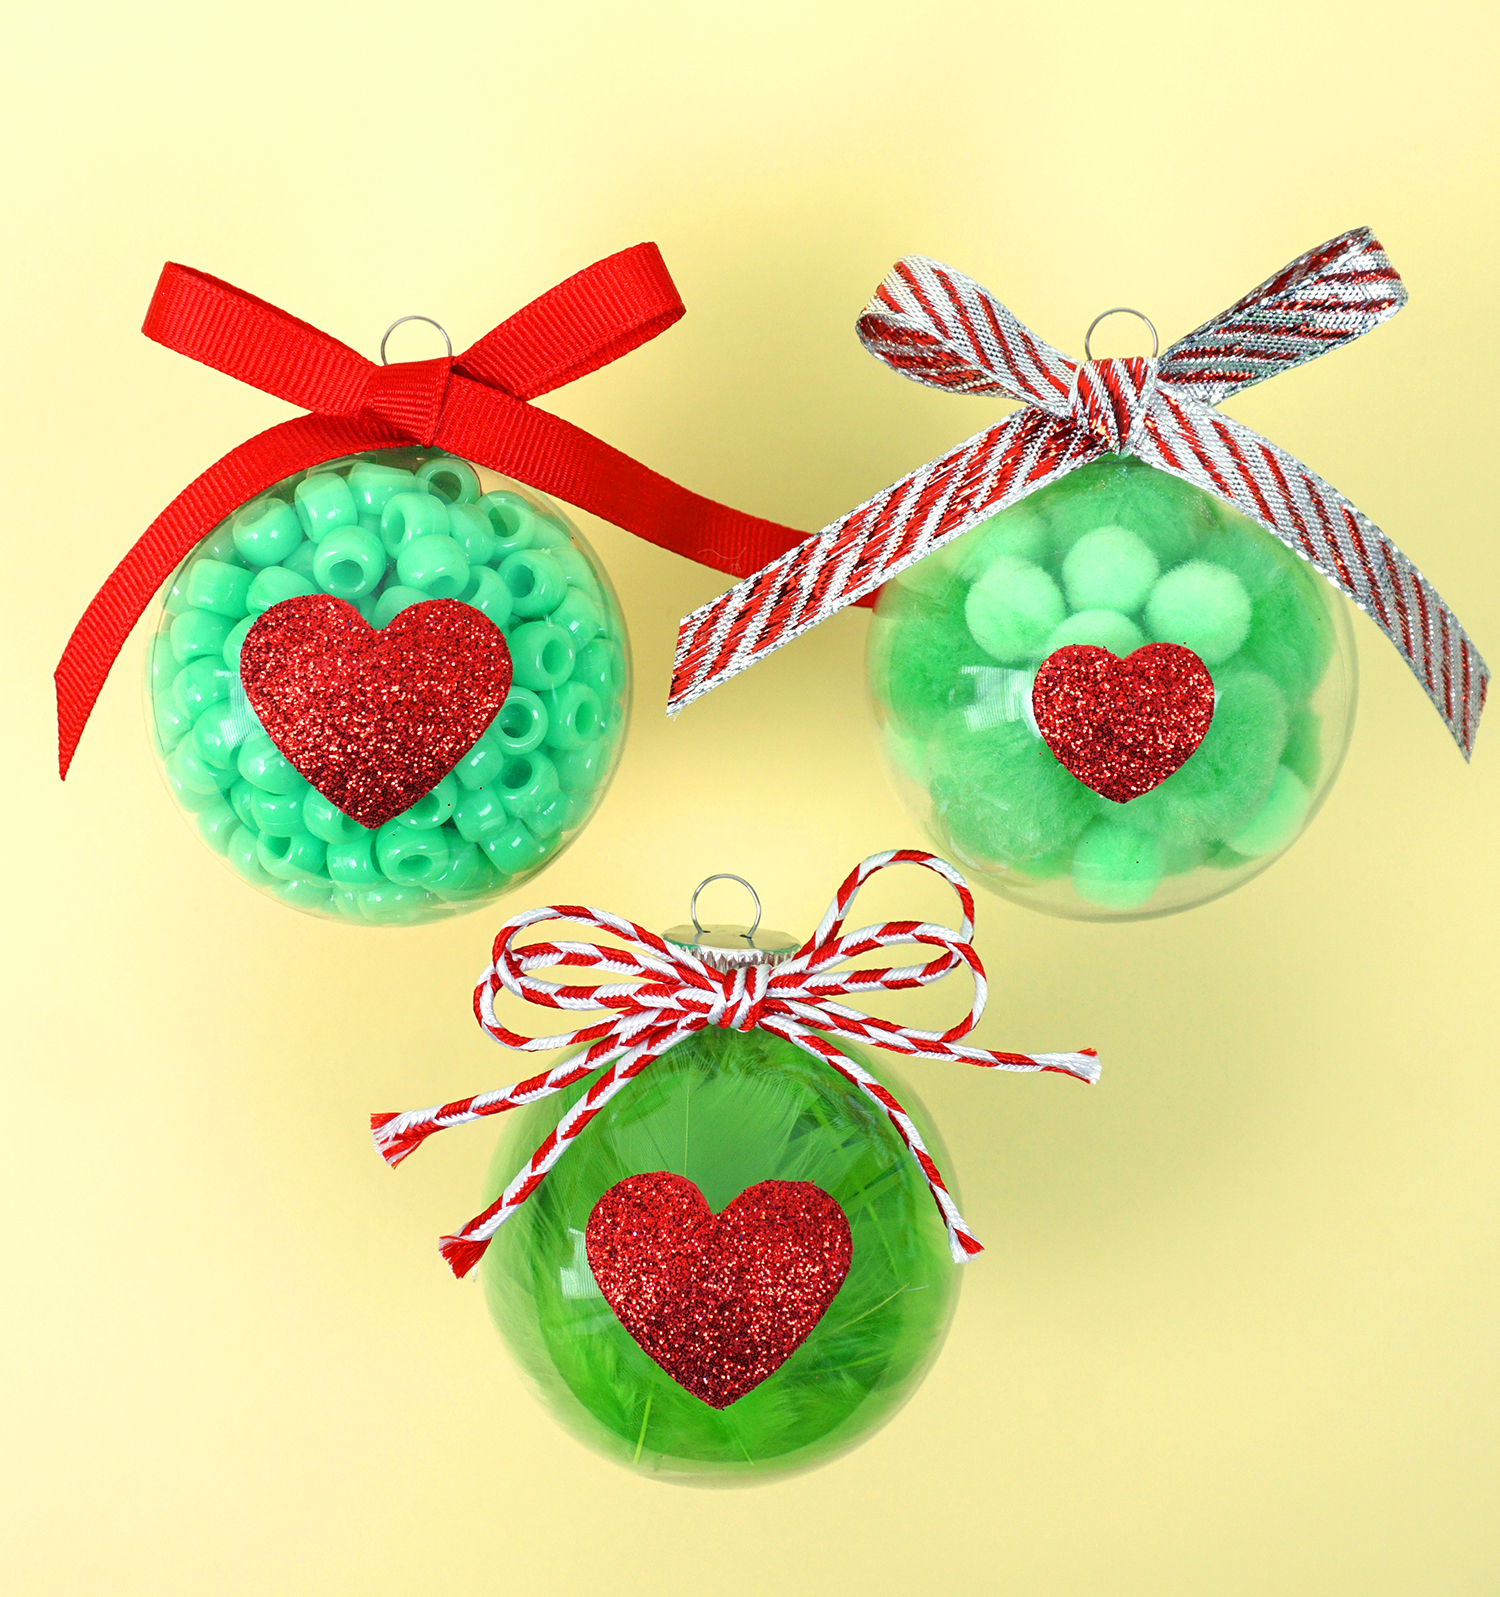 Grinch Ornaments: easy Christmas craft for kids. 3 Green ornaments with red hearts on yellow background.